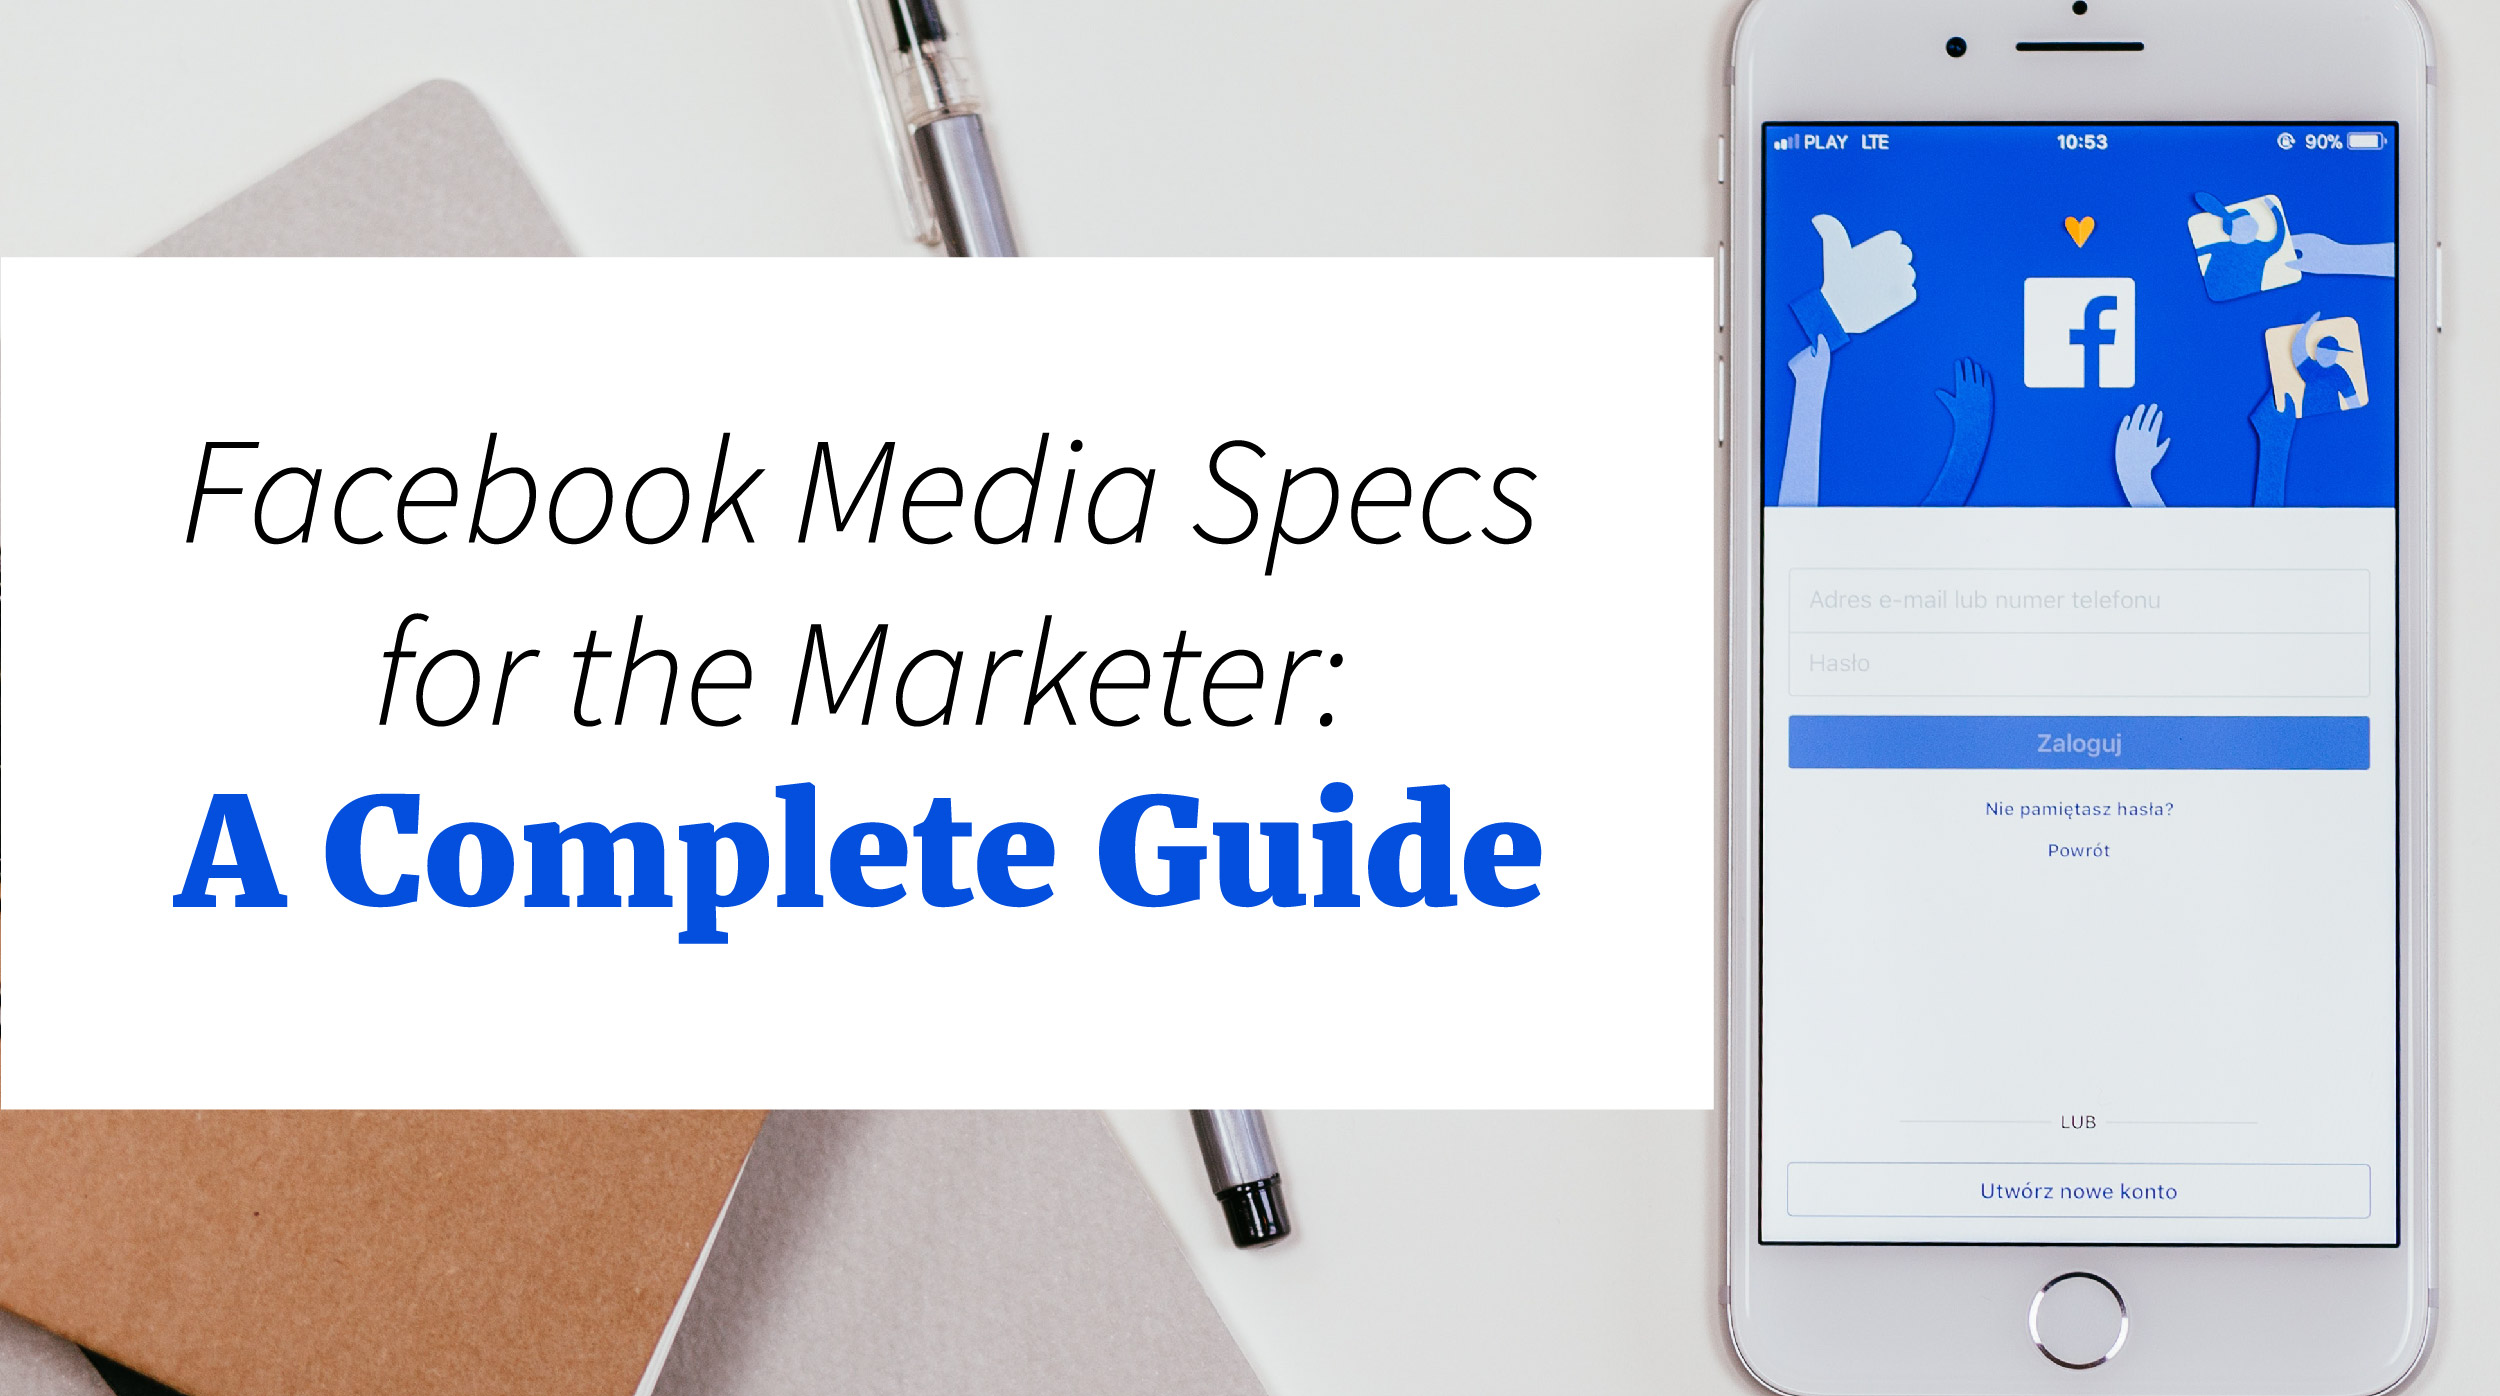 Facebook Media Specs for the Marketer: A Complete Guide